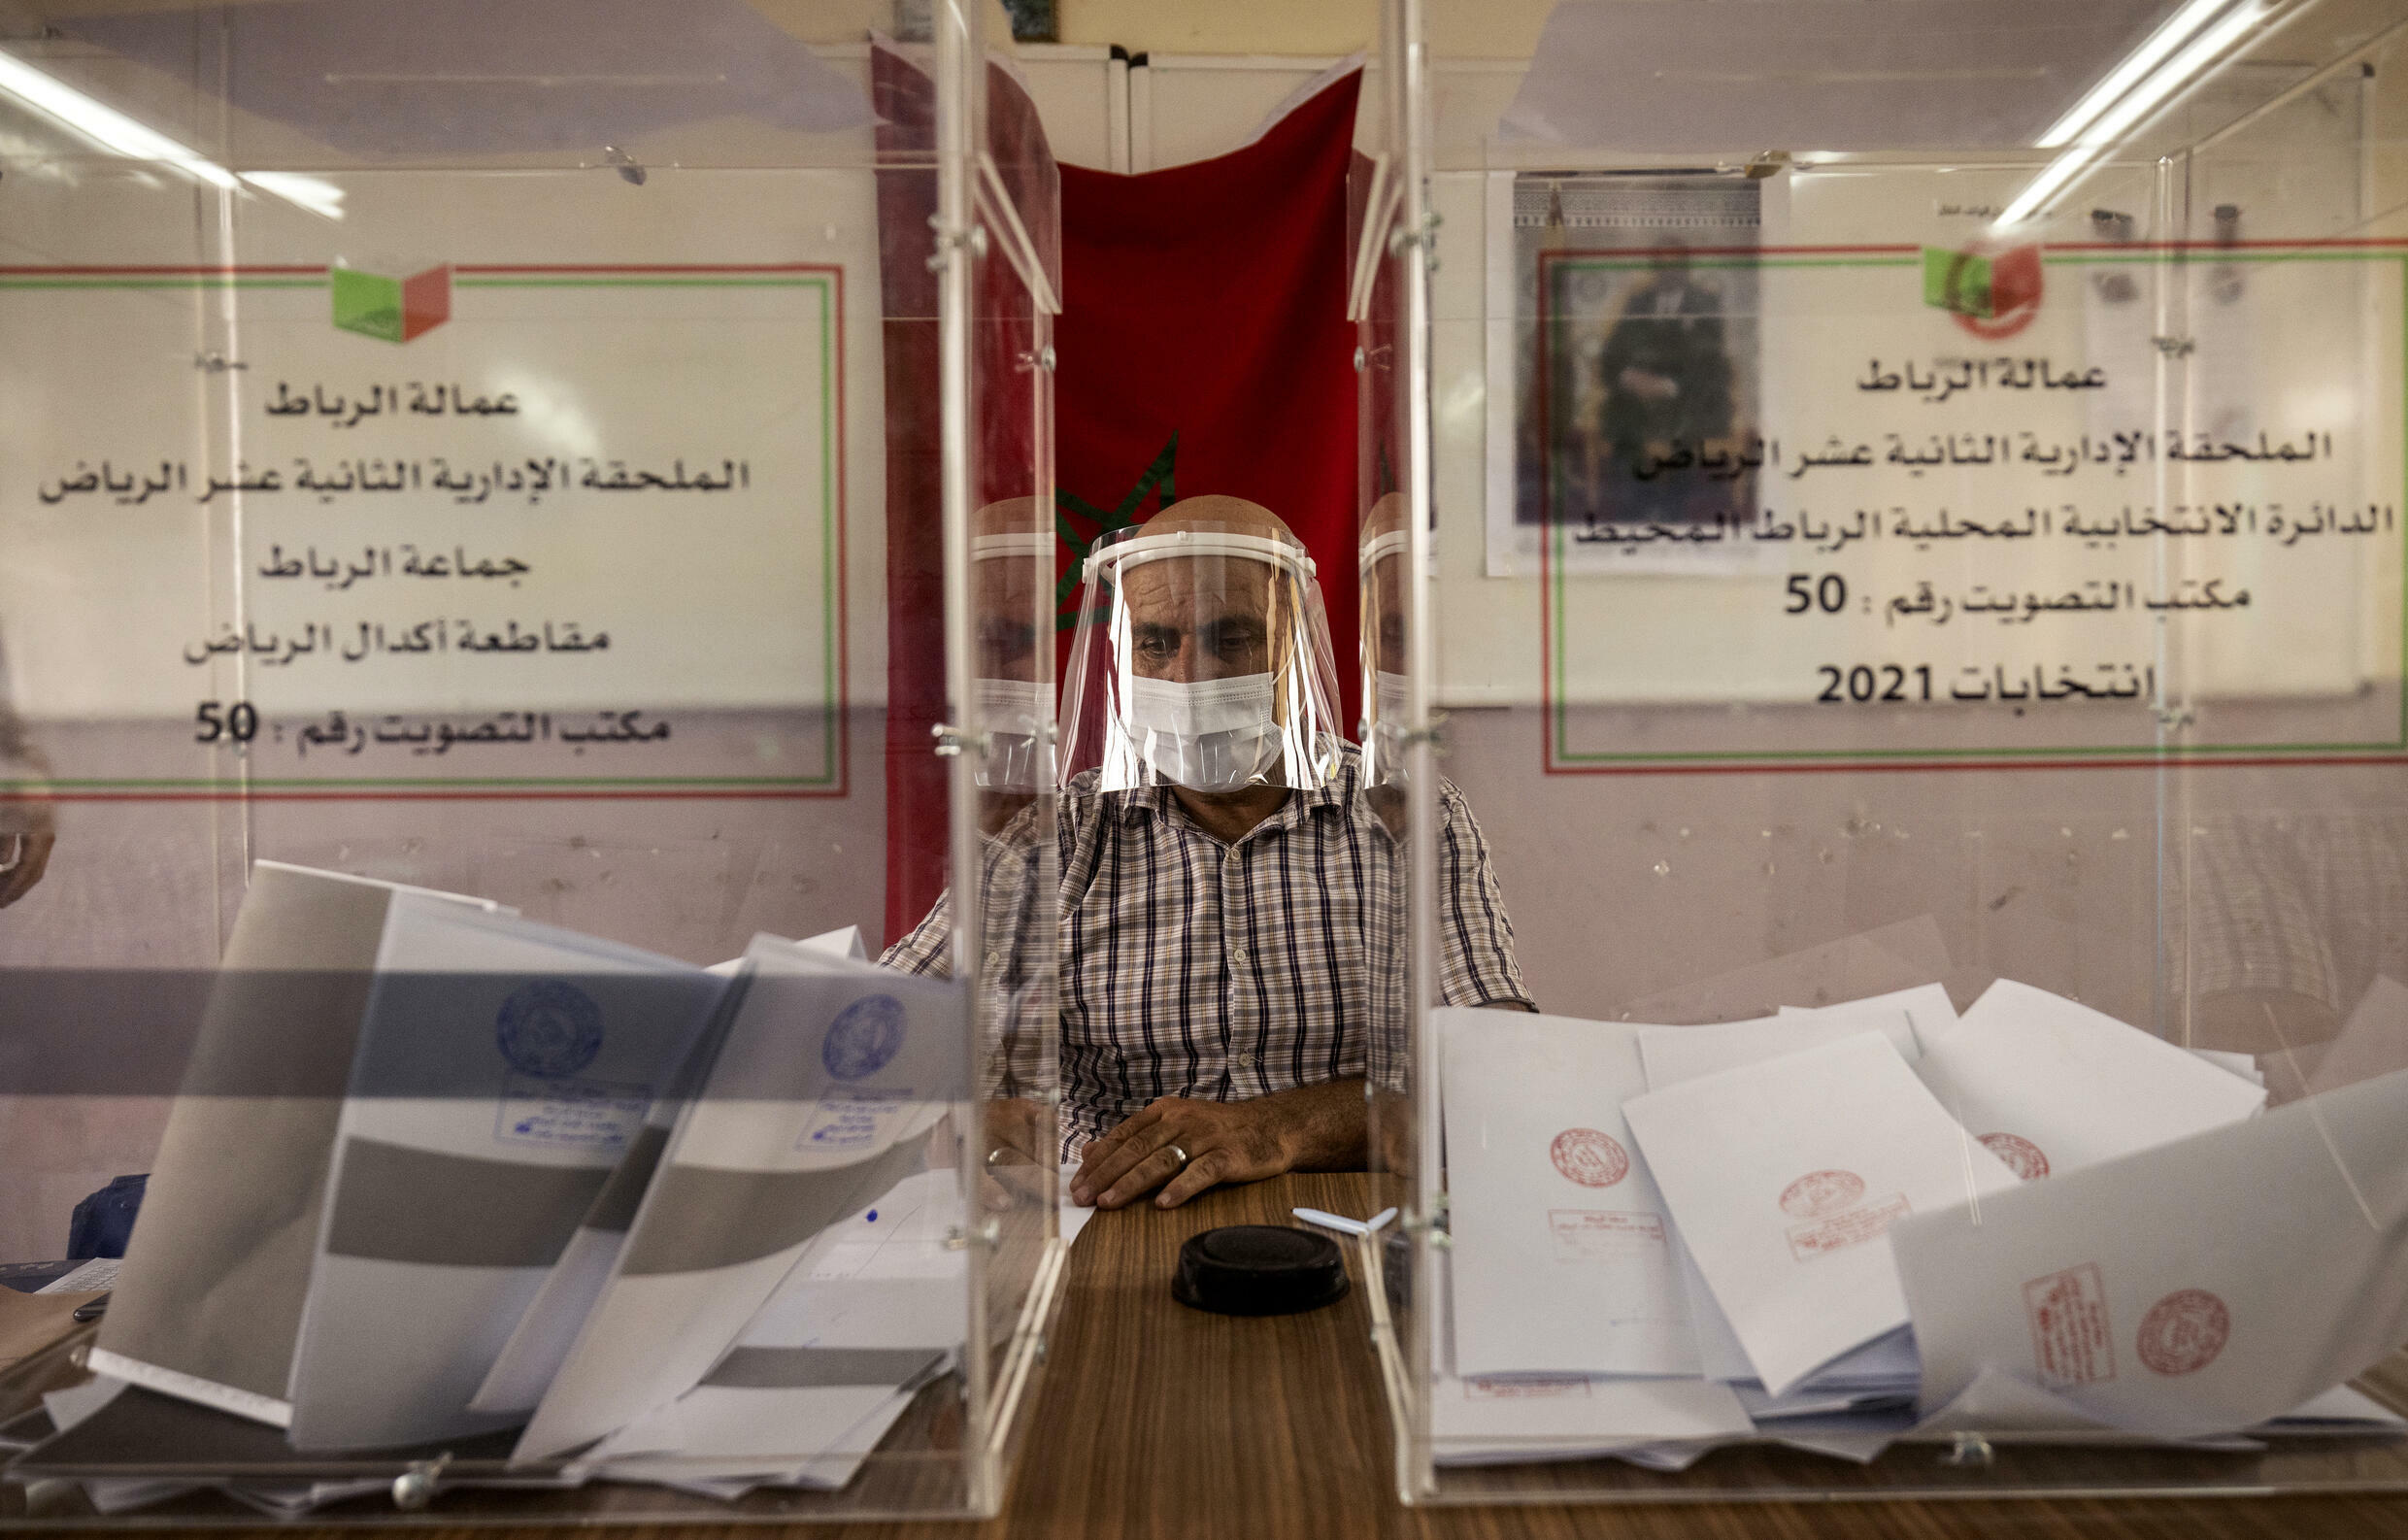 Liberal parties thrashed Morocco's long-ruling Islamists in parliamentary elections, according to provisional results